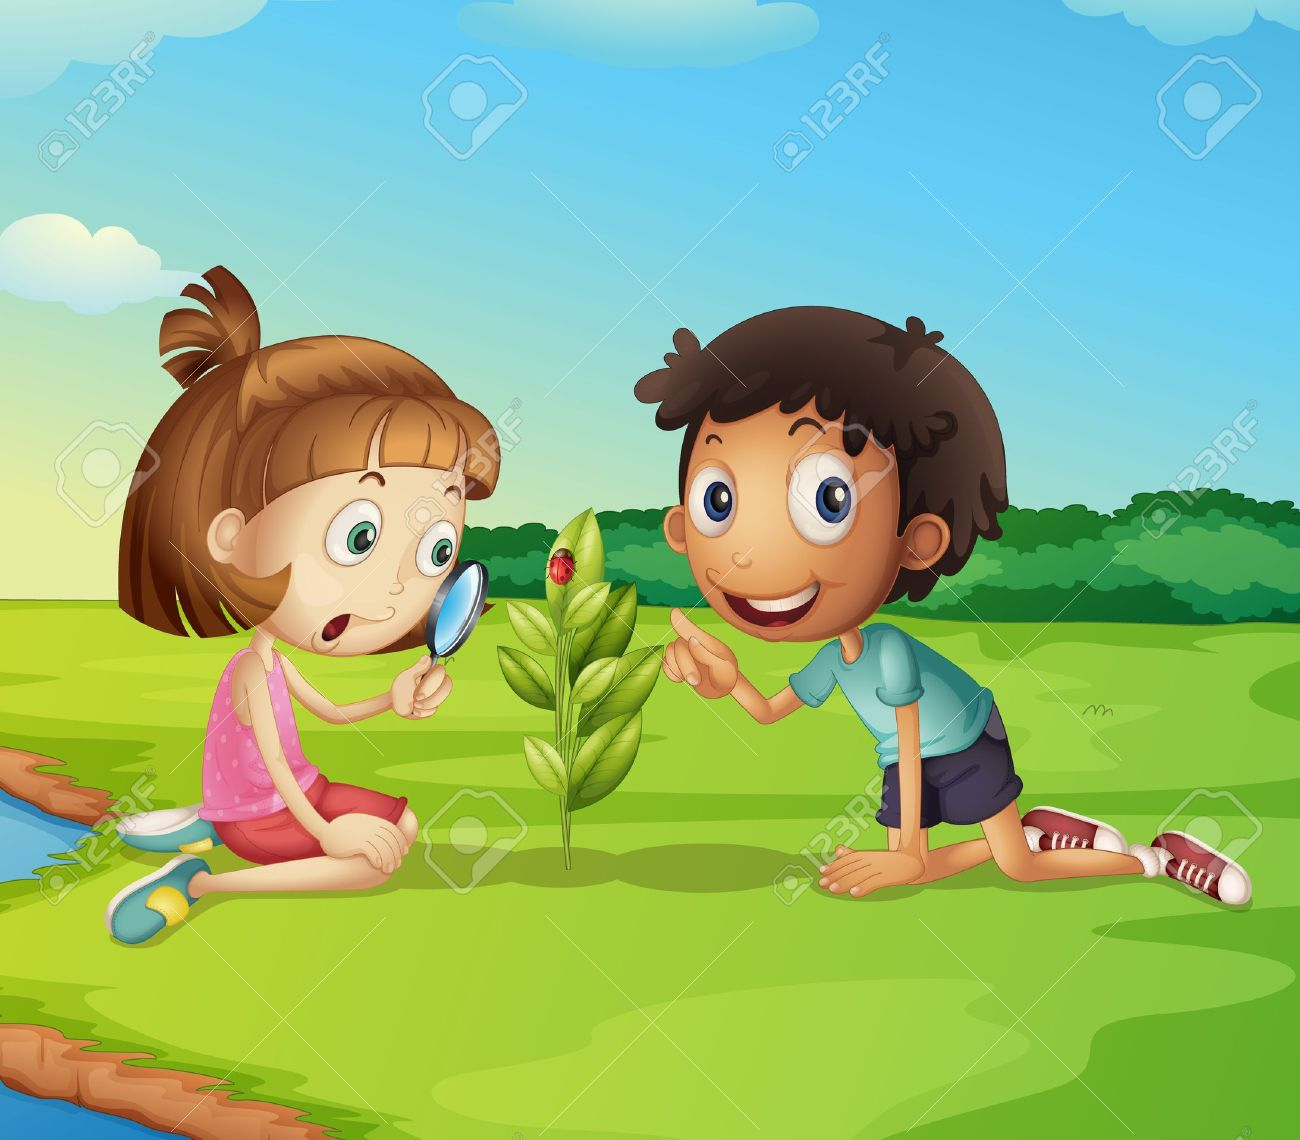 Illustration Of 2 Kids Exploring Nature Royalty Free Cliparts ...